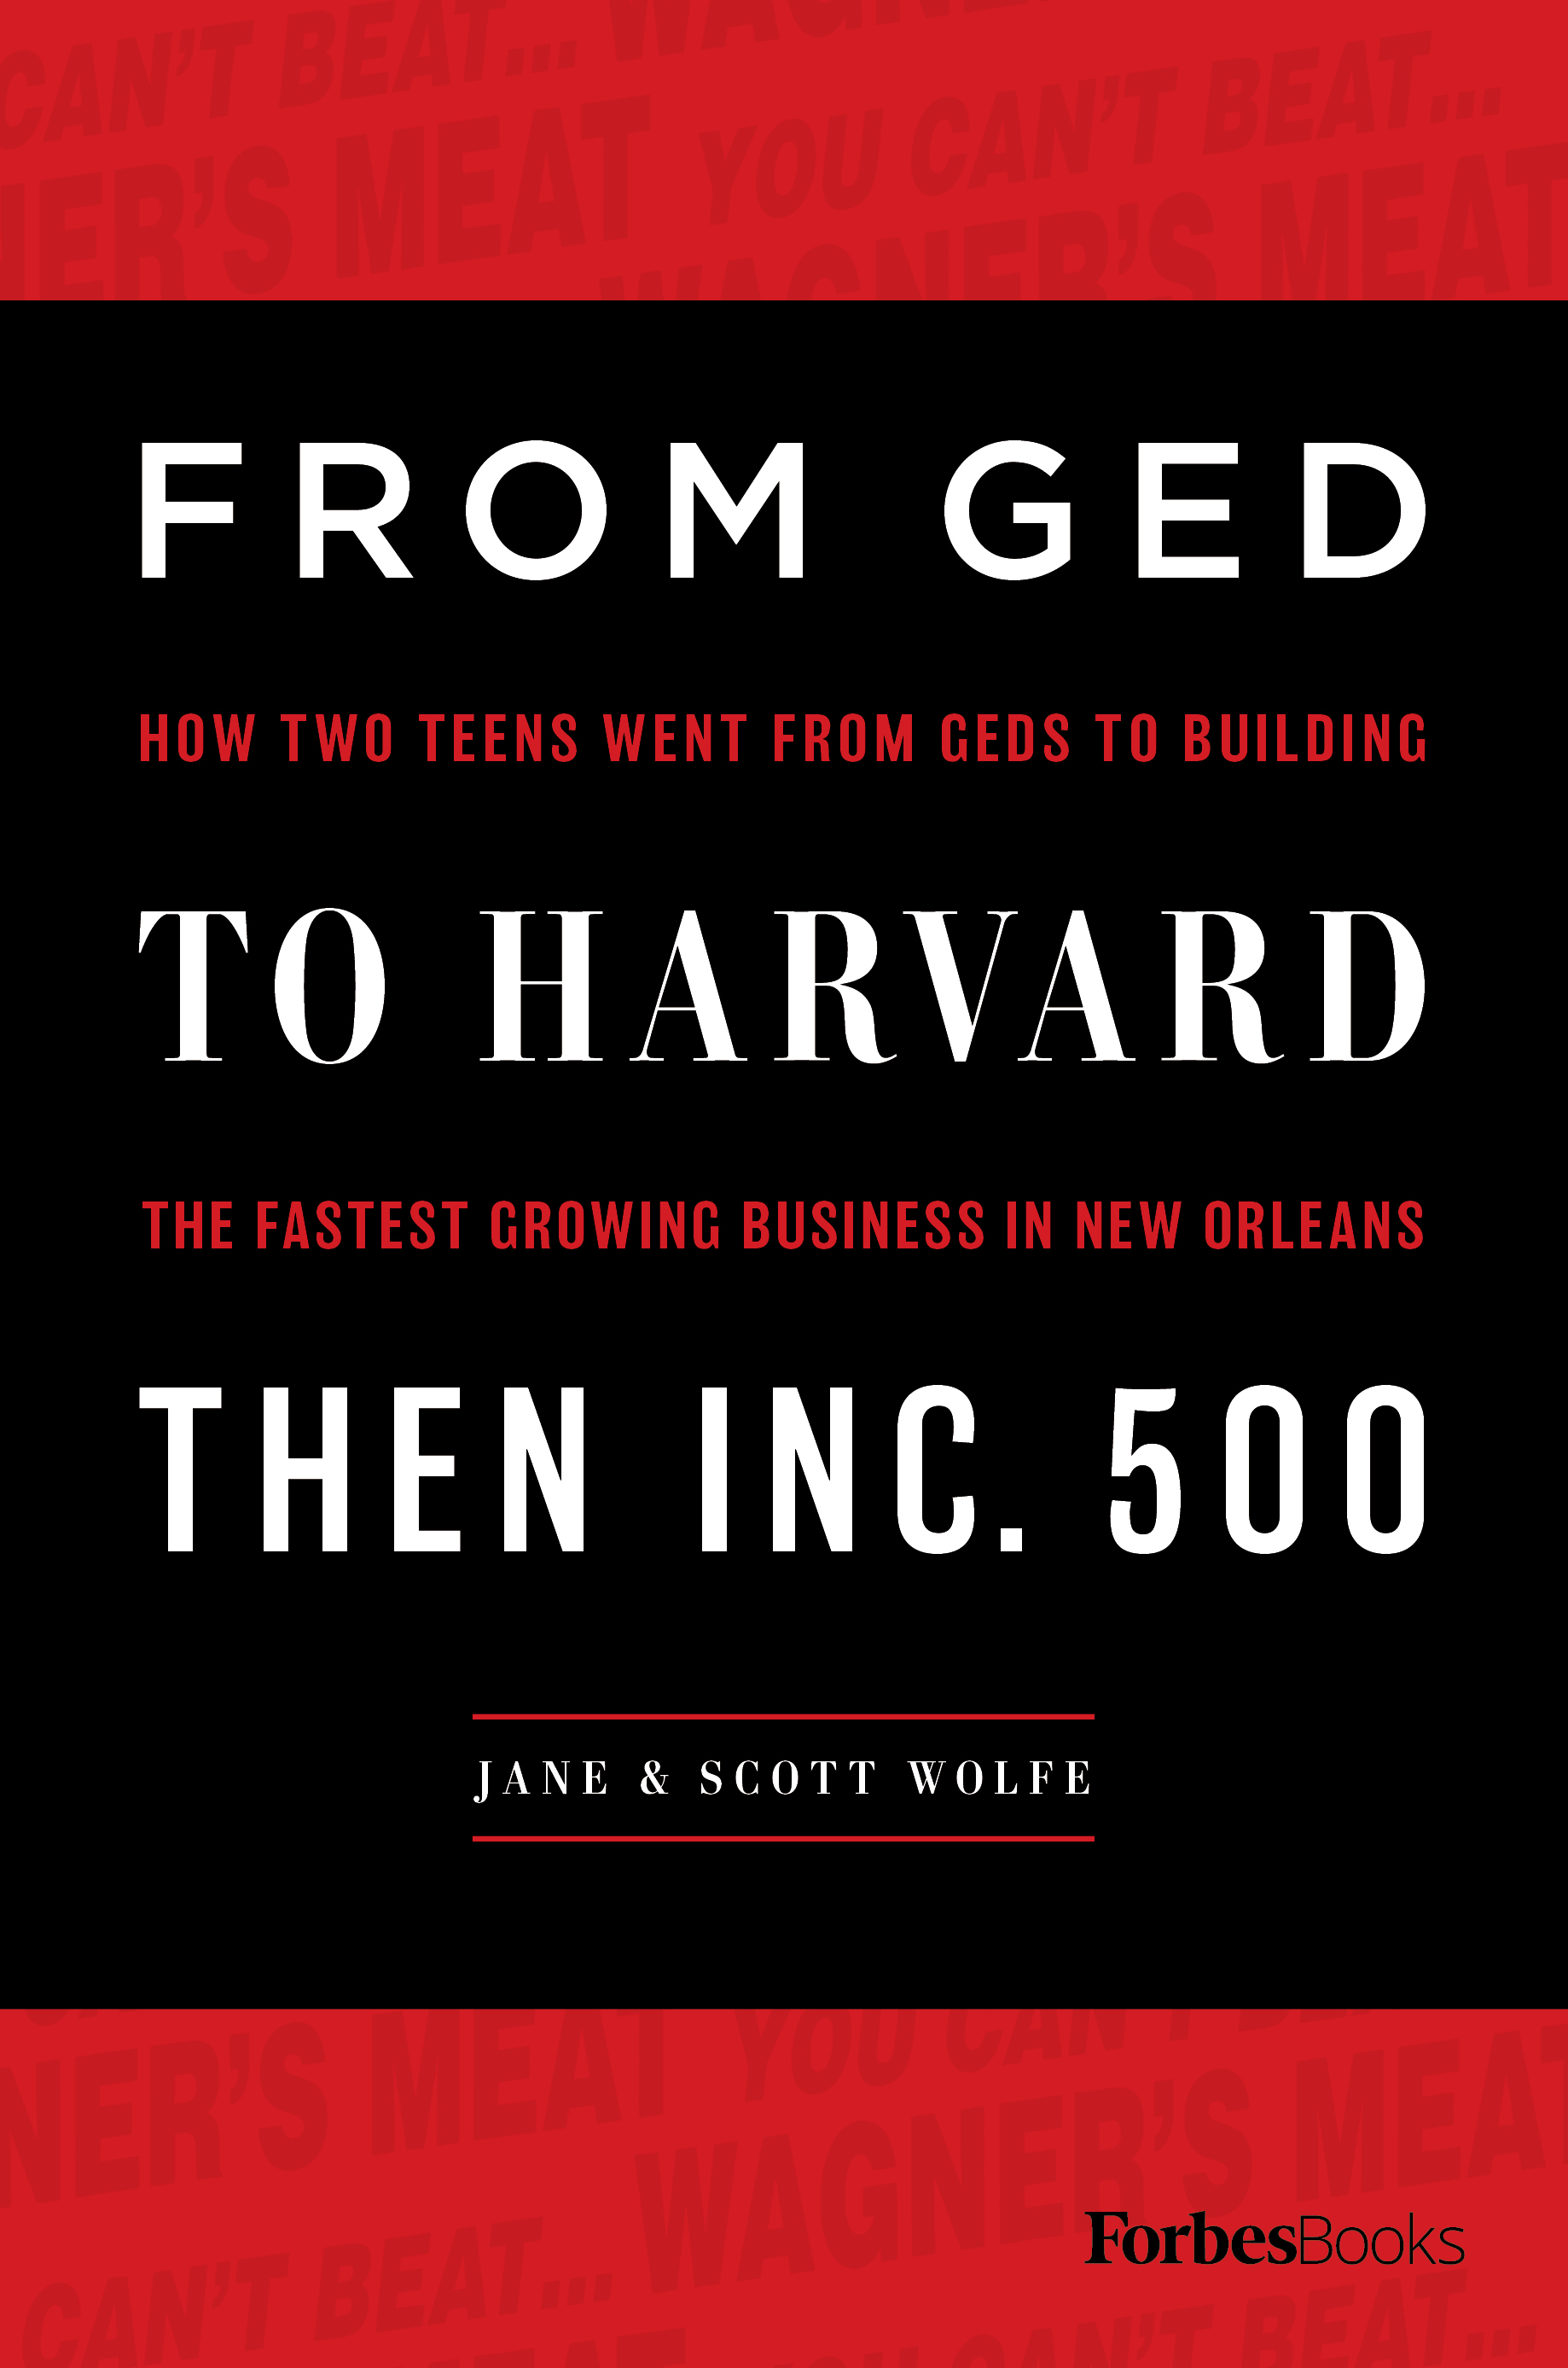 From GED To Harvard Then Inc. 500 by Jane & Scott Wolfe